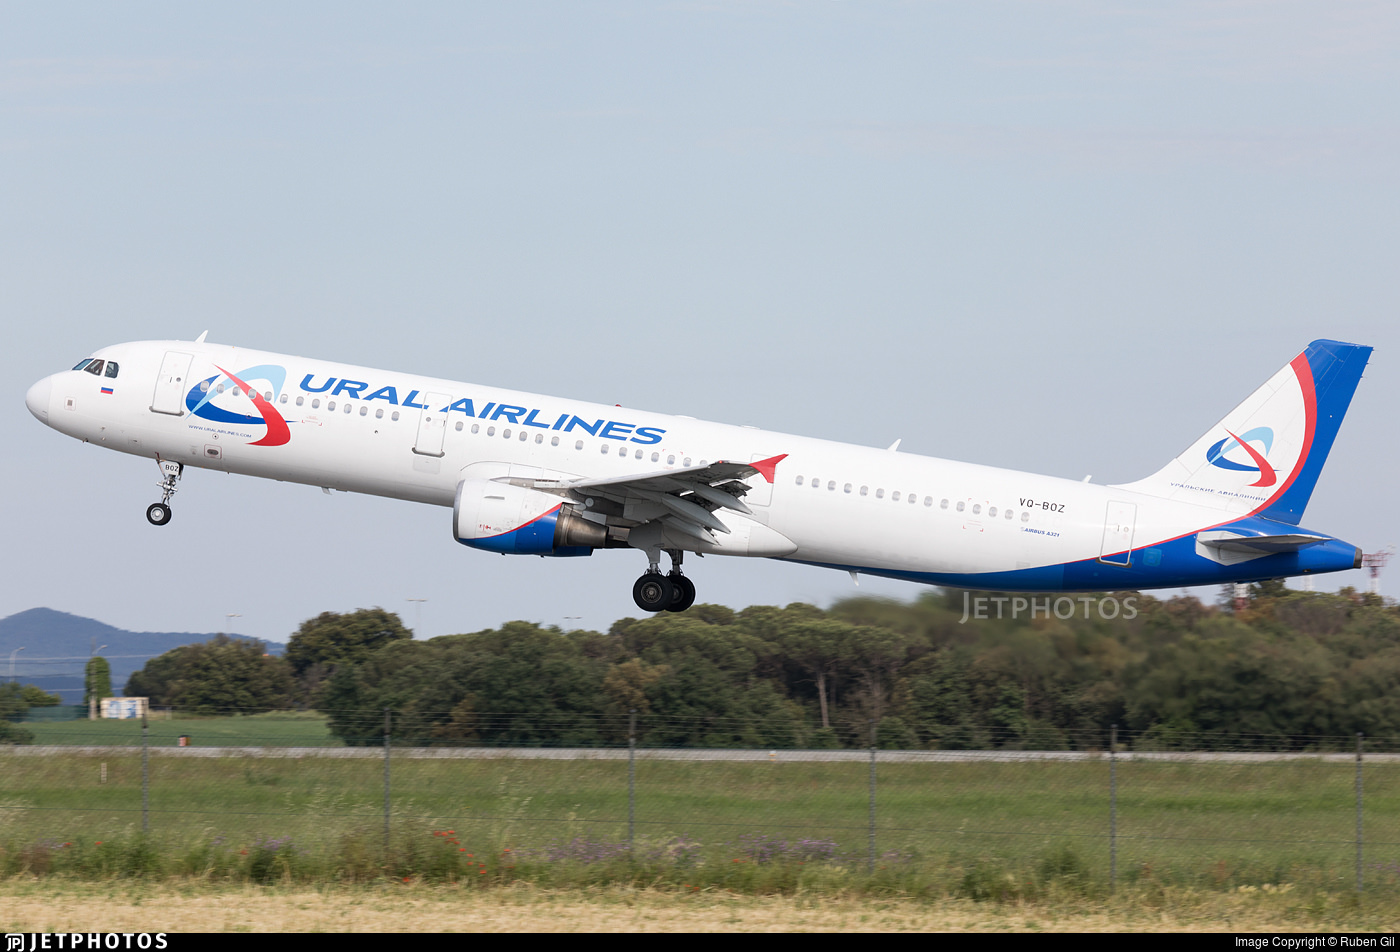 Ural Airlines A321 VQ-BOZ